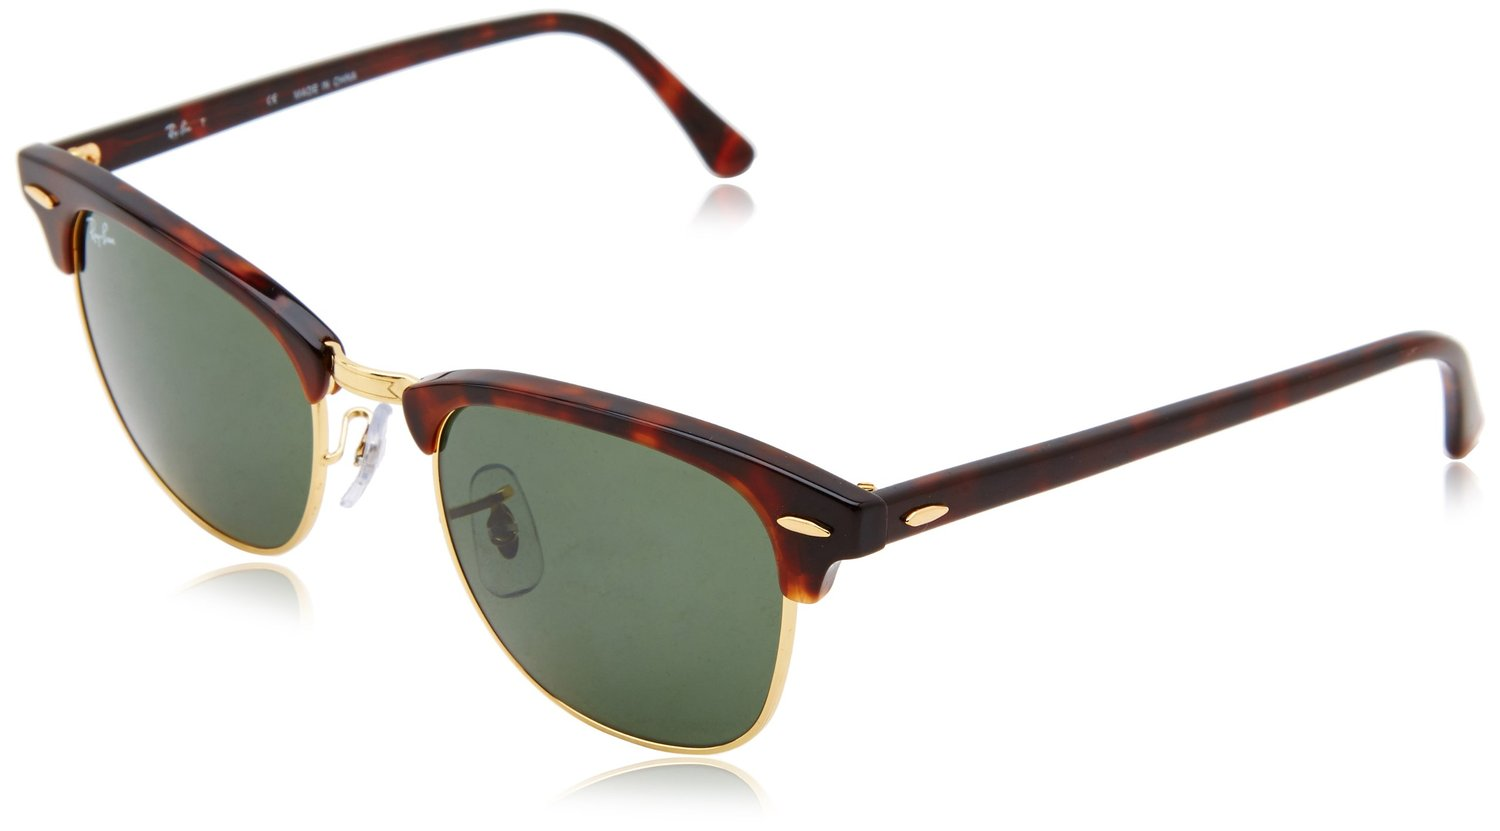 ray ban rb3016 classic clubmaster sunglasses  amazon: ray ban rb3016 classic clubmaster sunglasses, non polarized, tortoise/arista frame/crystal green lens,